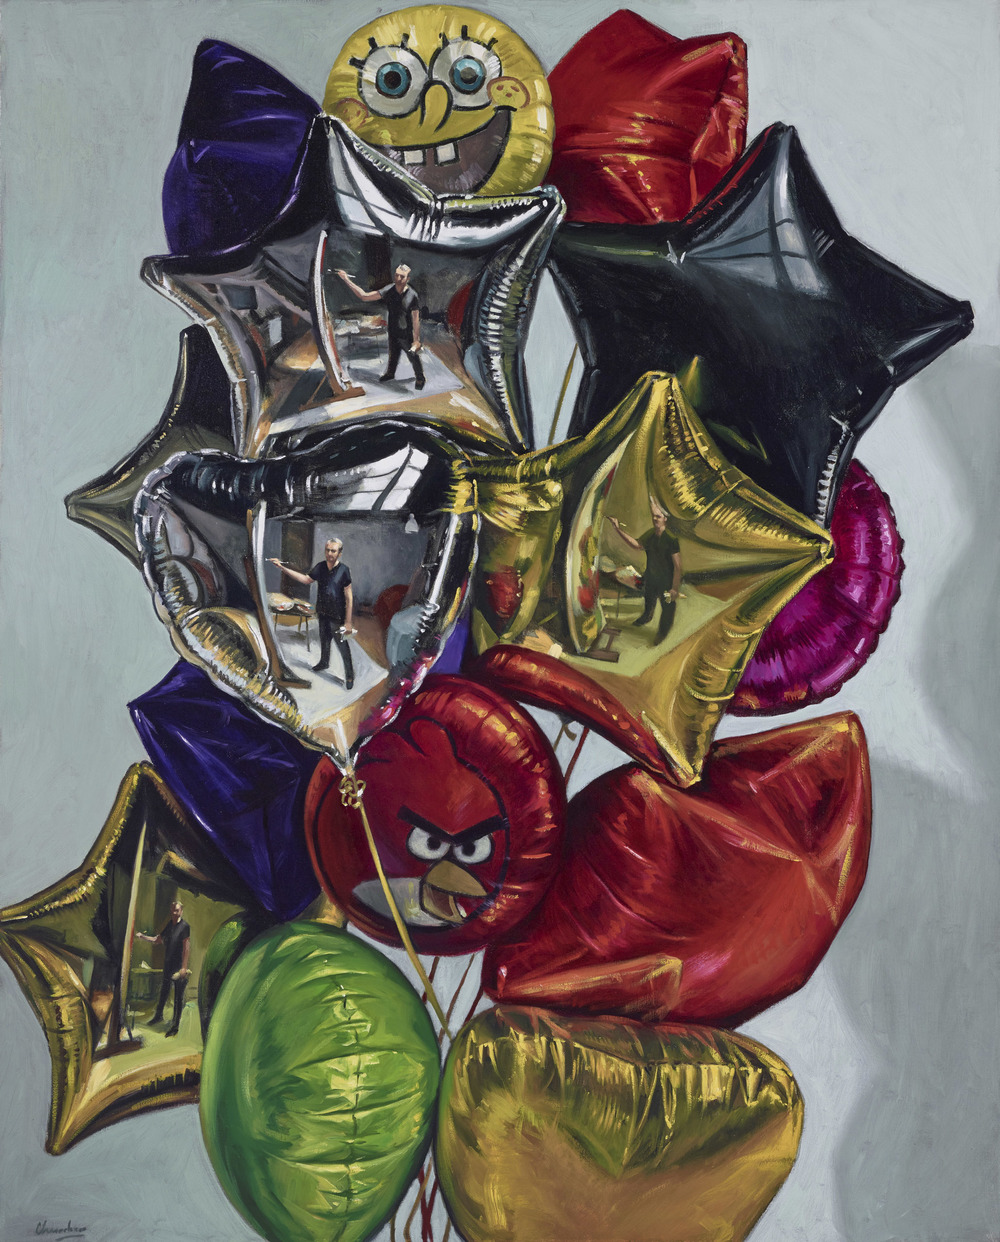 Four Self Portraits in a Bunch of Balloons